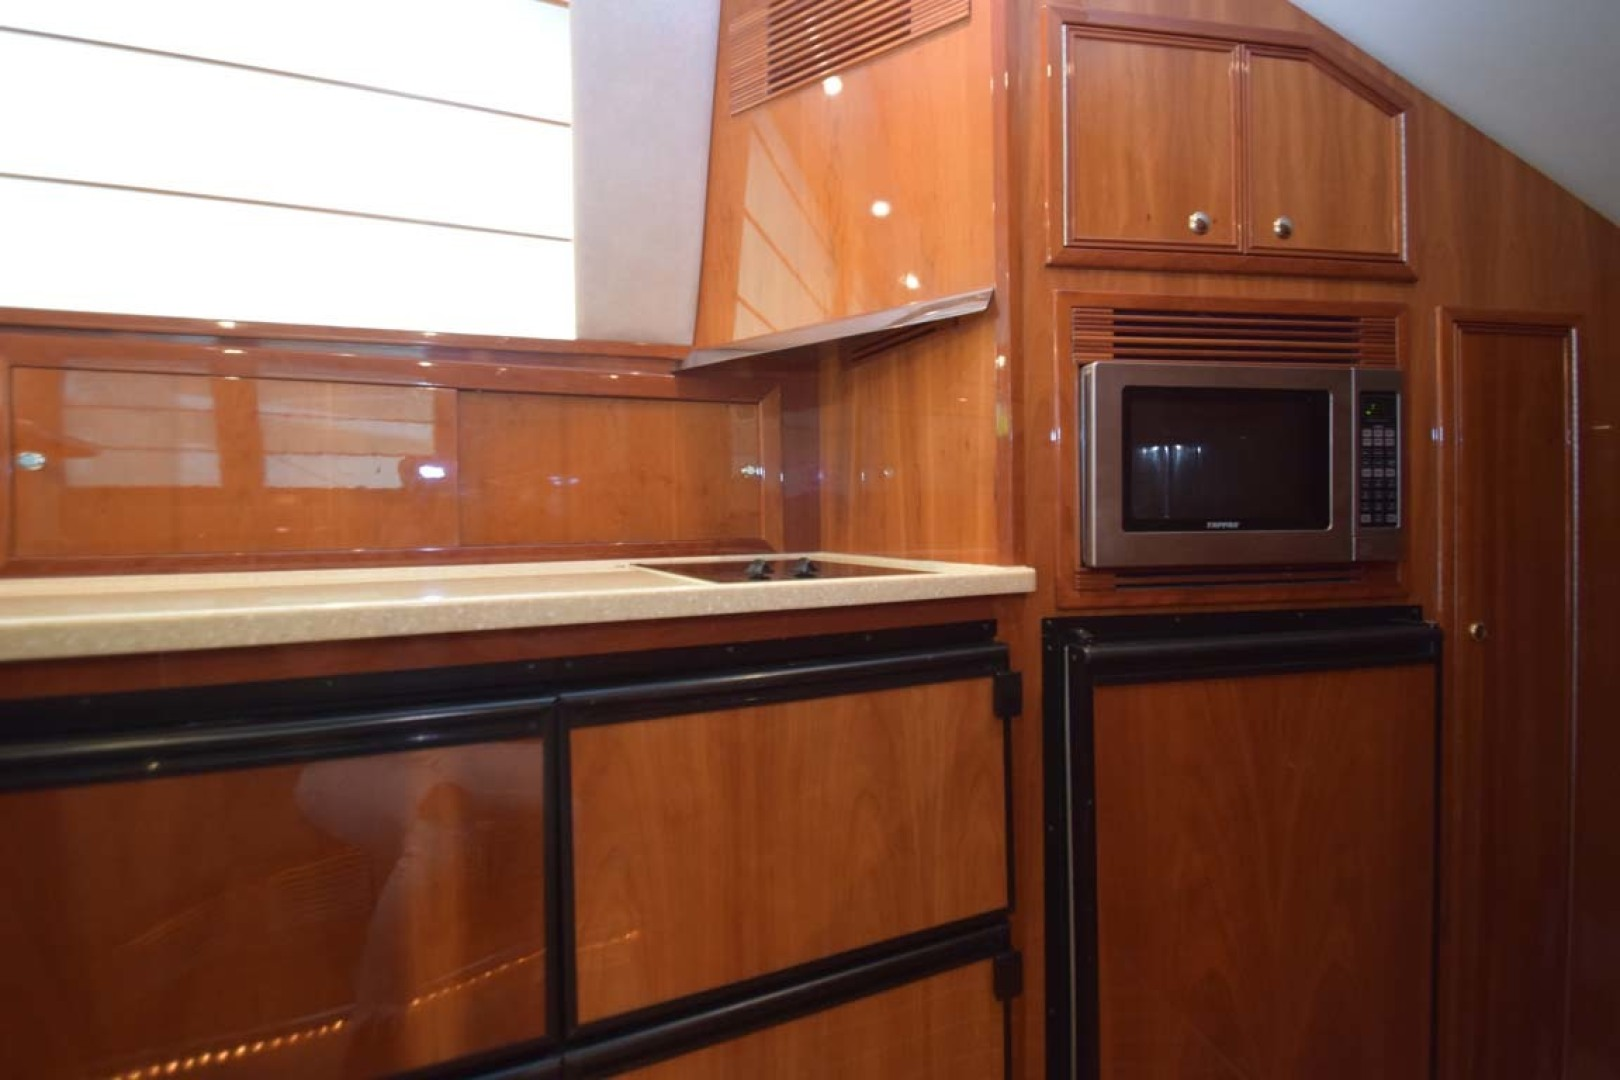 Riviera-Enclosed Flybridge 2007-Magica II Coral Gables-Florida-United States-Freezers, Cooktop, Microwave And Refrigerator-1443172 | Thumbnail